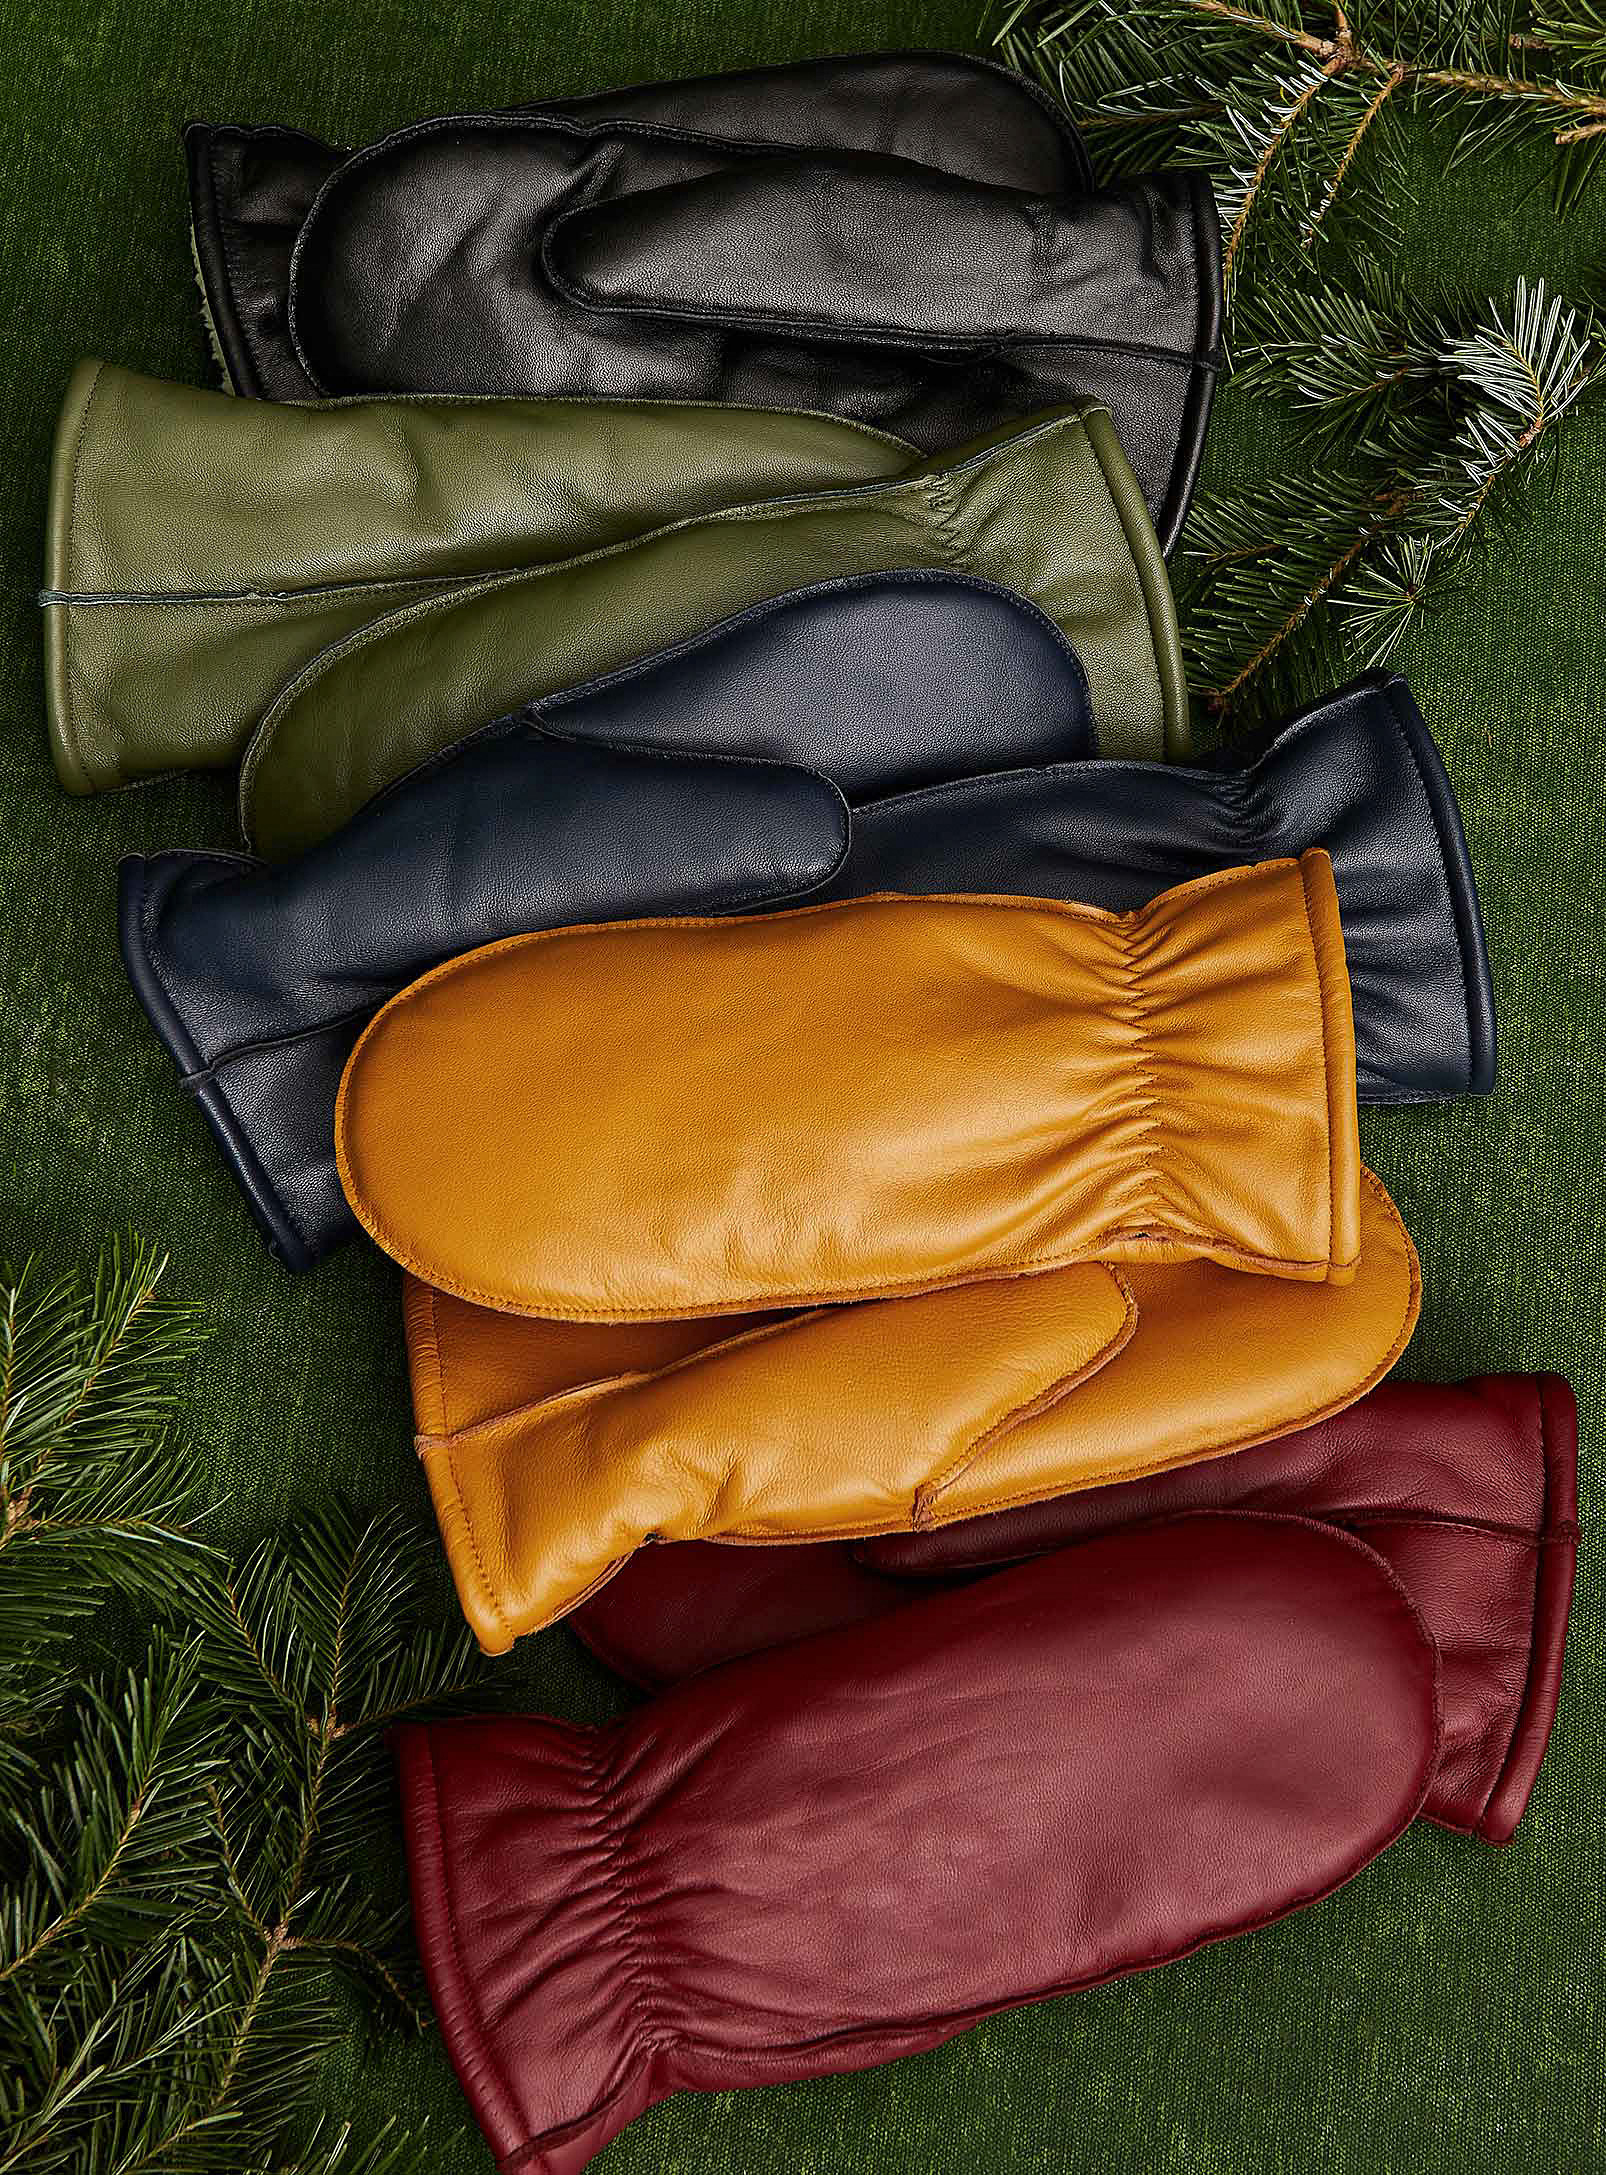 Five pairs of leather mittens on a plain background